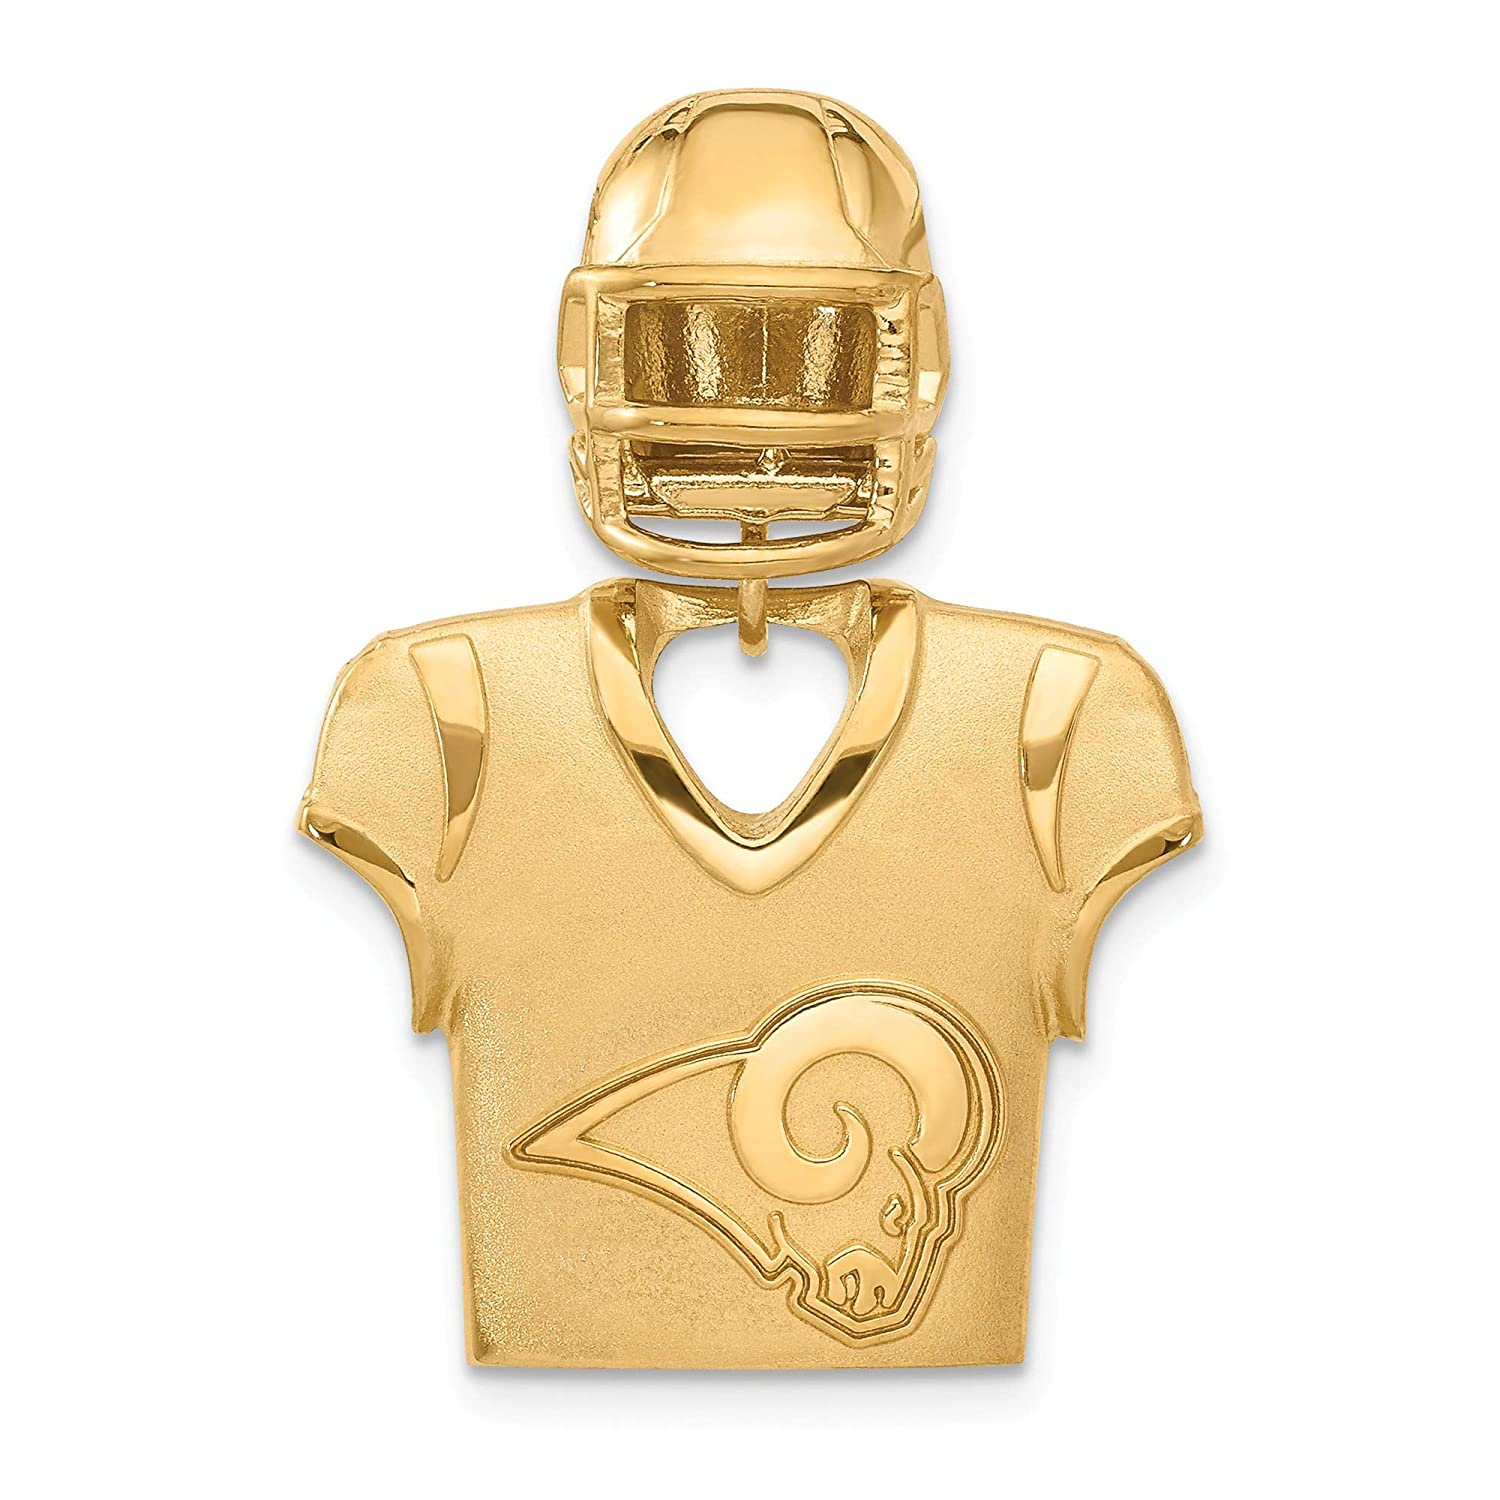 Kira Riley Gold Plated Los Angeles Rams Jersey /& Helmet Pendant for Chains and Necklaces